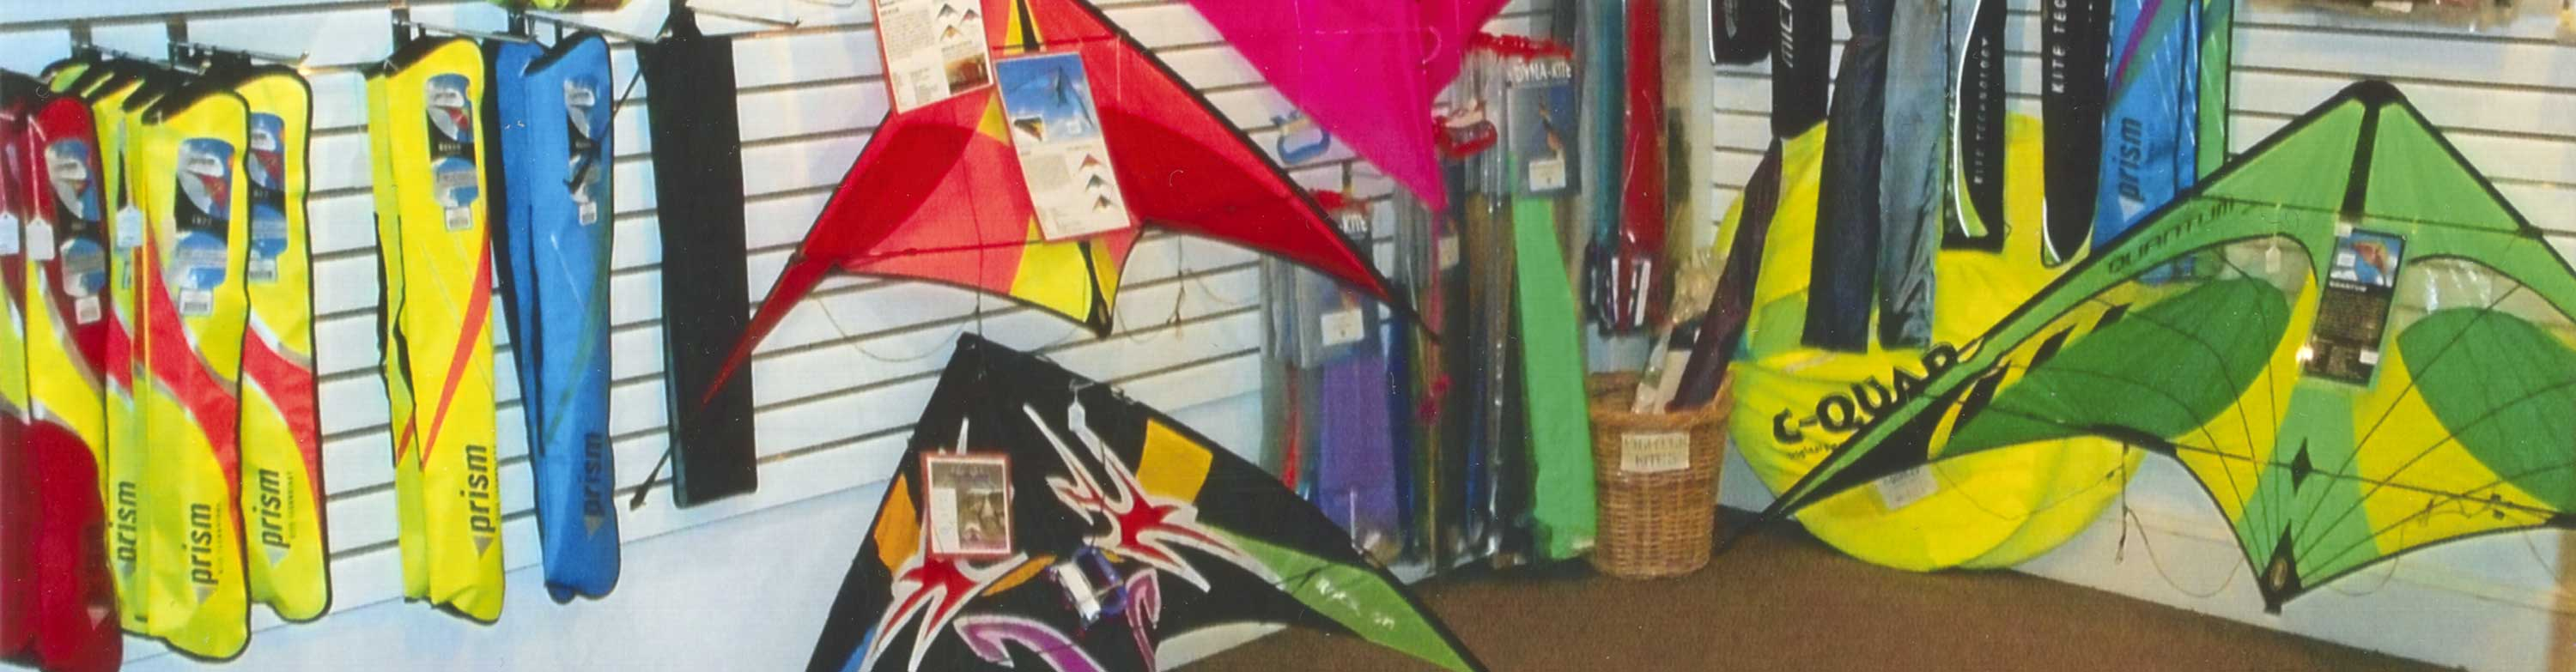 Our kite store is packed full of kites.